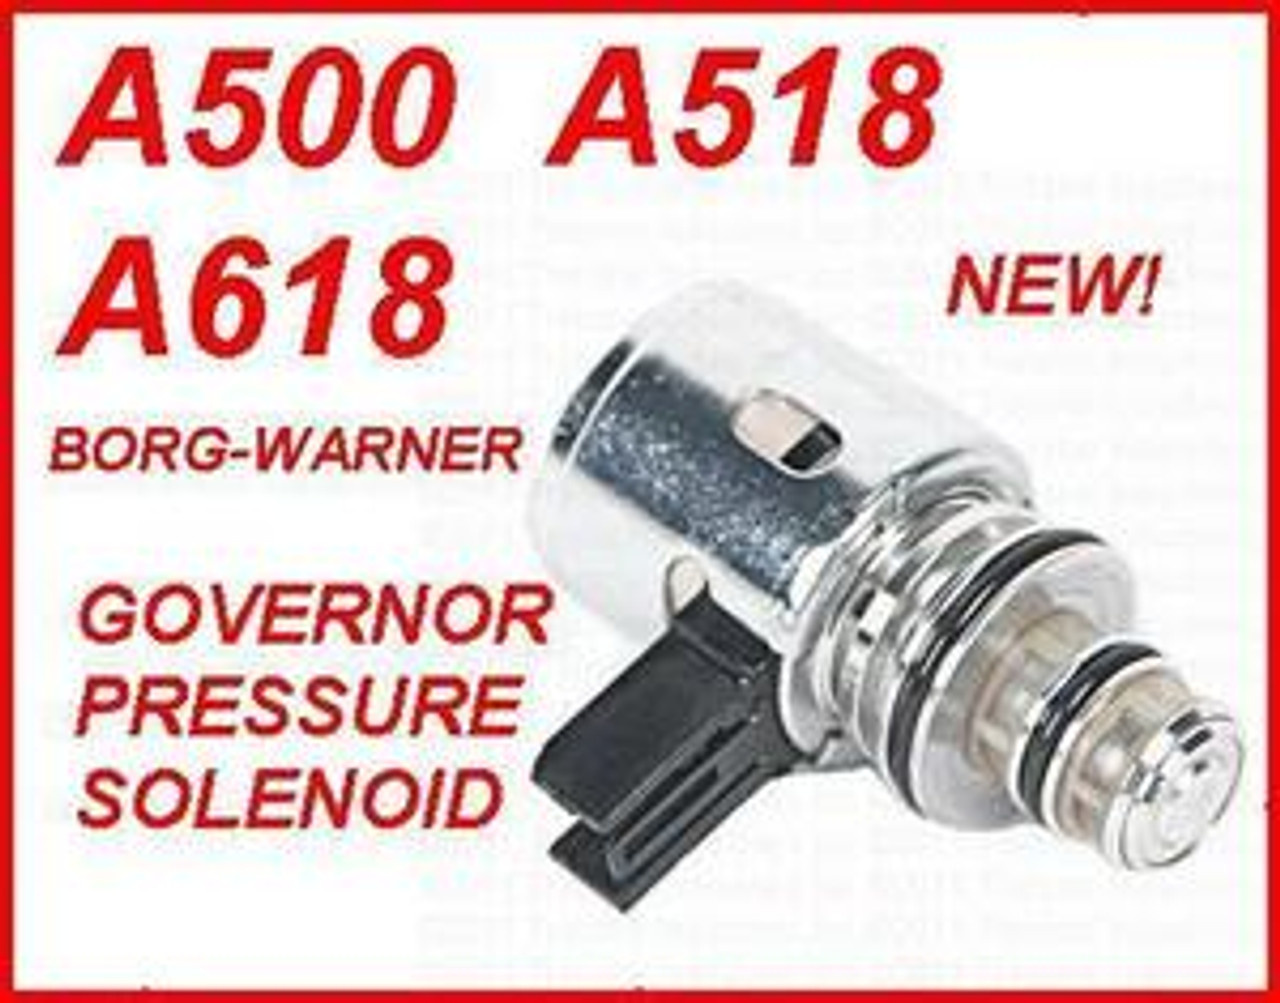 A500 42RE 44RE A518 46RE 46RH A618 47RE 48RE TRANSMISSION GOVERNOR PRESSURE  SOLENOID BORG-WARNER UPDATED MADE IN USA FITS '93+ DODGE JEEP MITSUBISHI